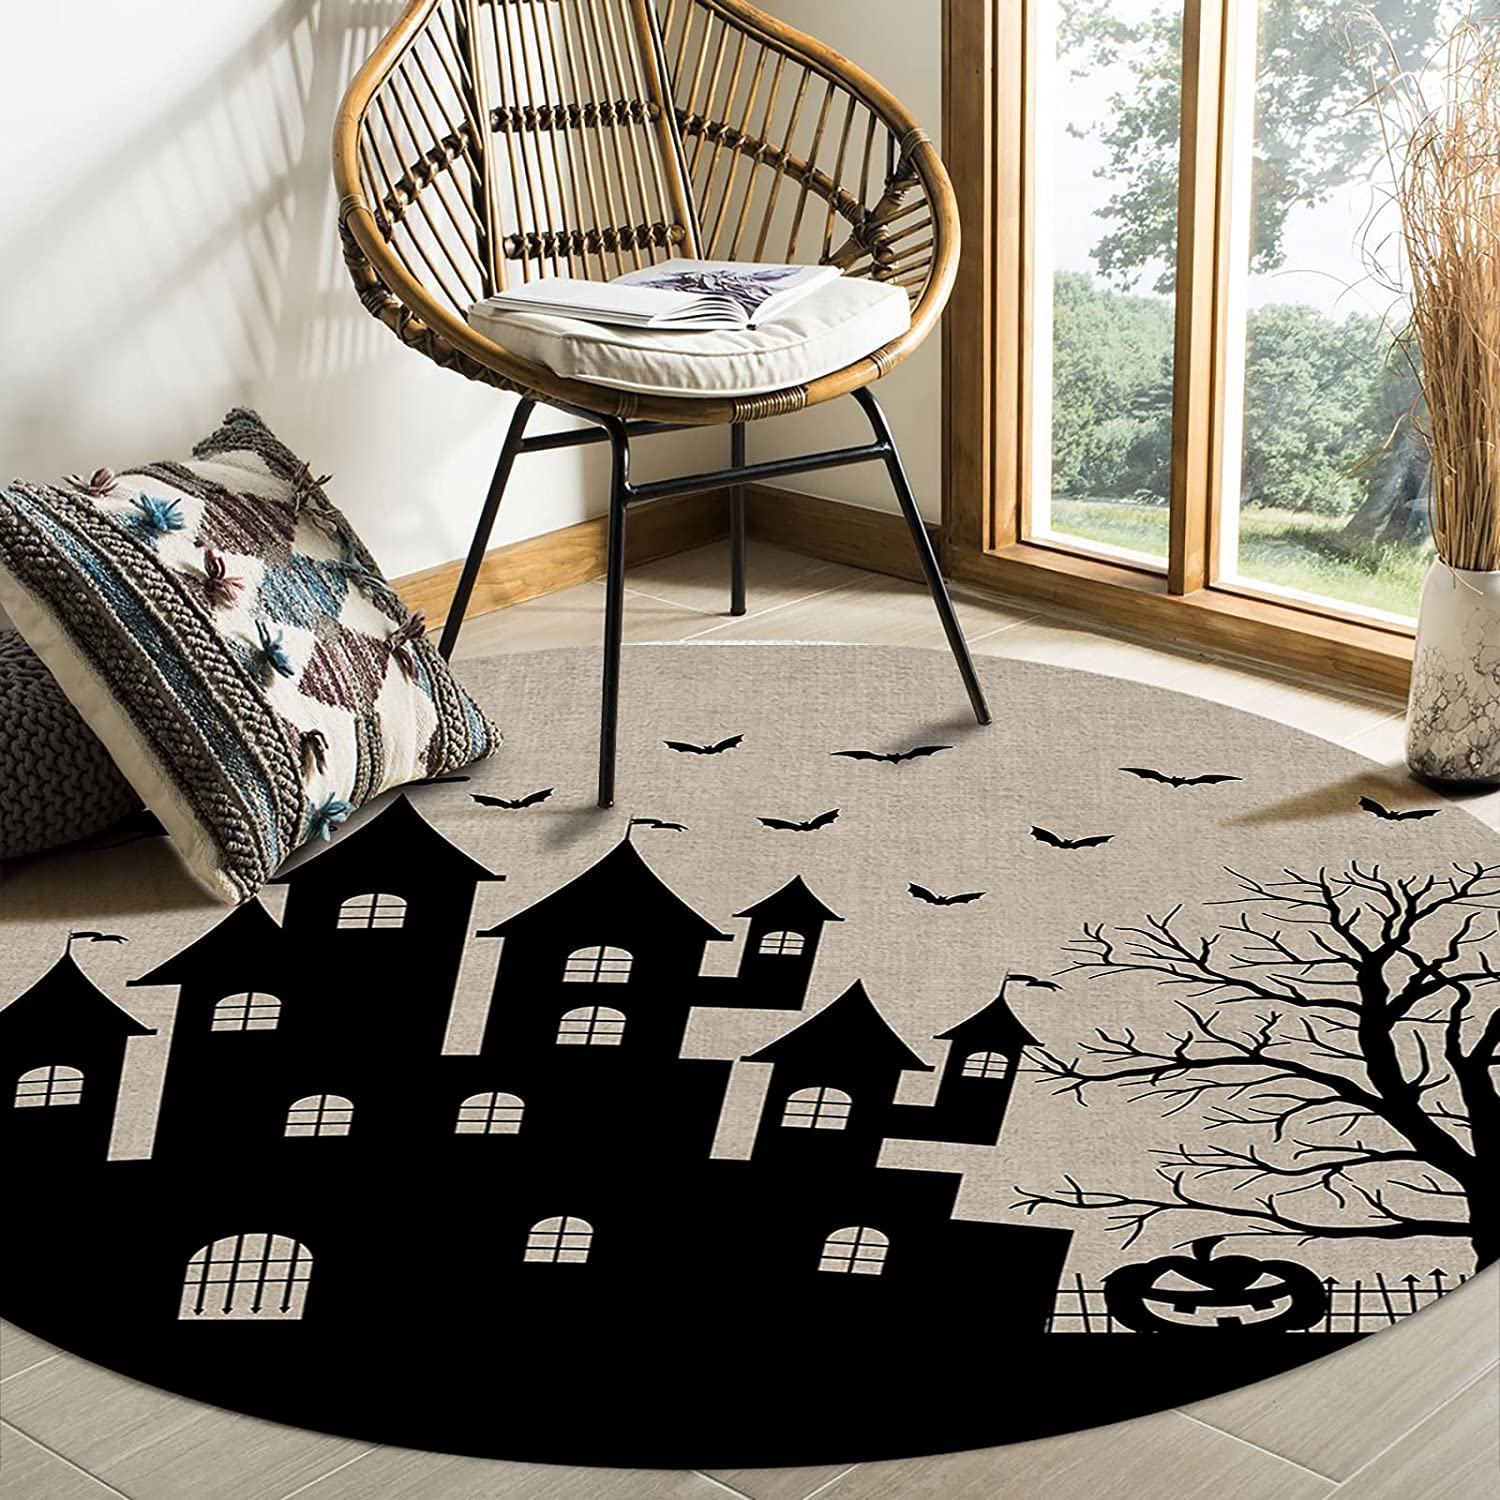 MuswannaA Round Area Rug- 6ft Halloween Flying Max 65% OFF Free shipping anywhere in the nation Happy Wi Diameter